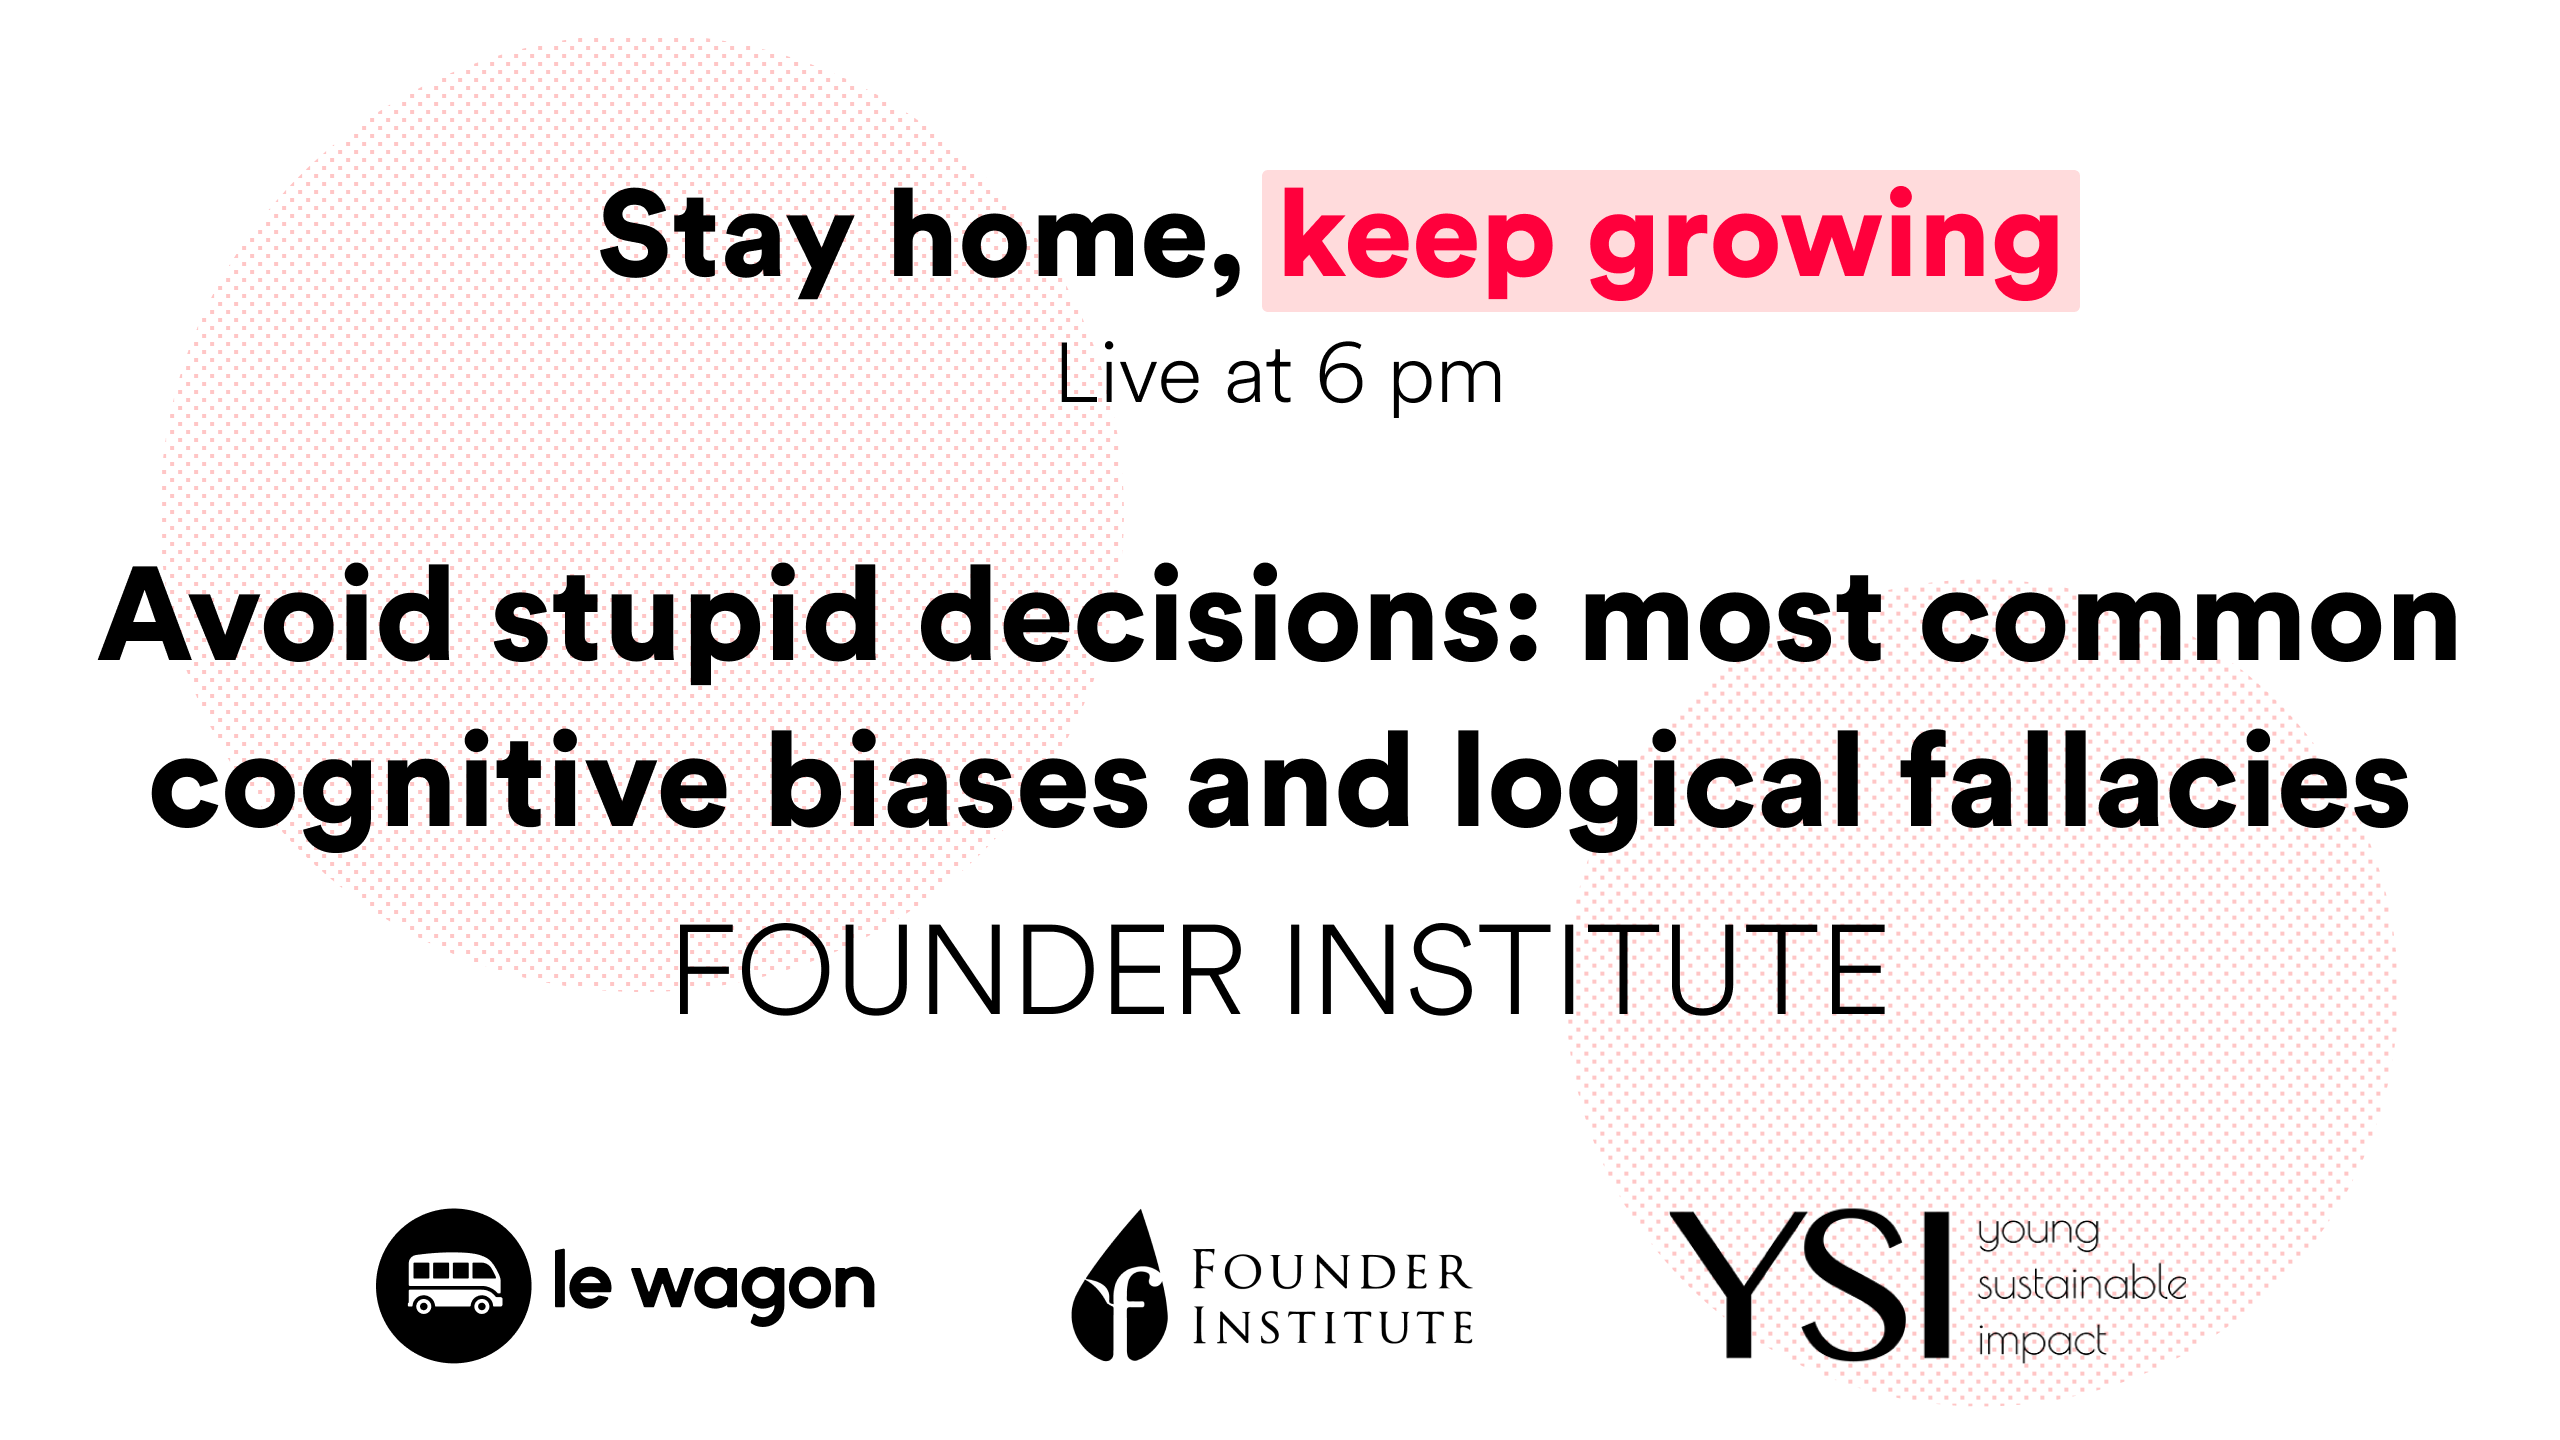 Avoid stupid decisions: most common cognitive biases and logical fallacies